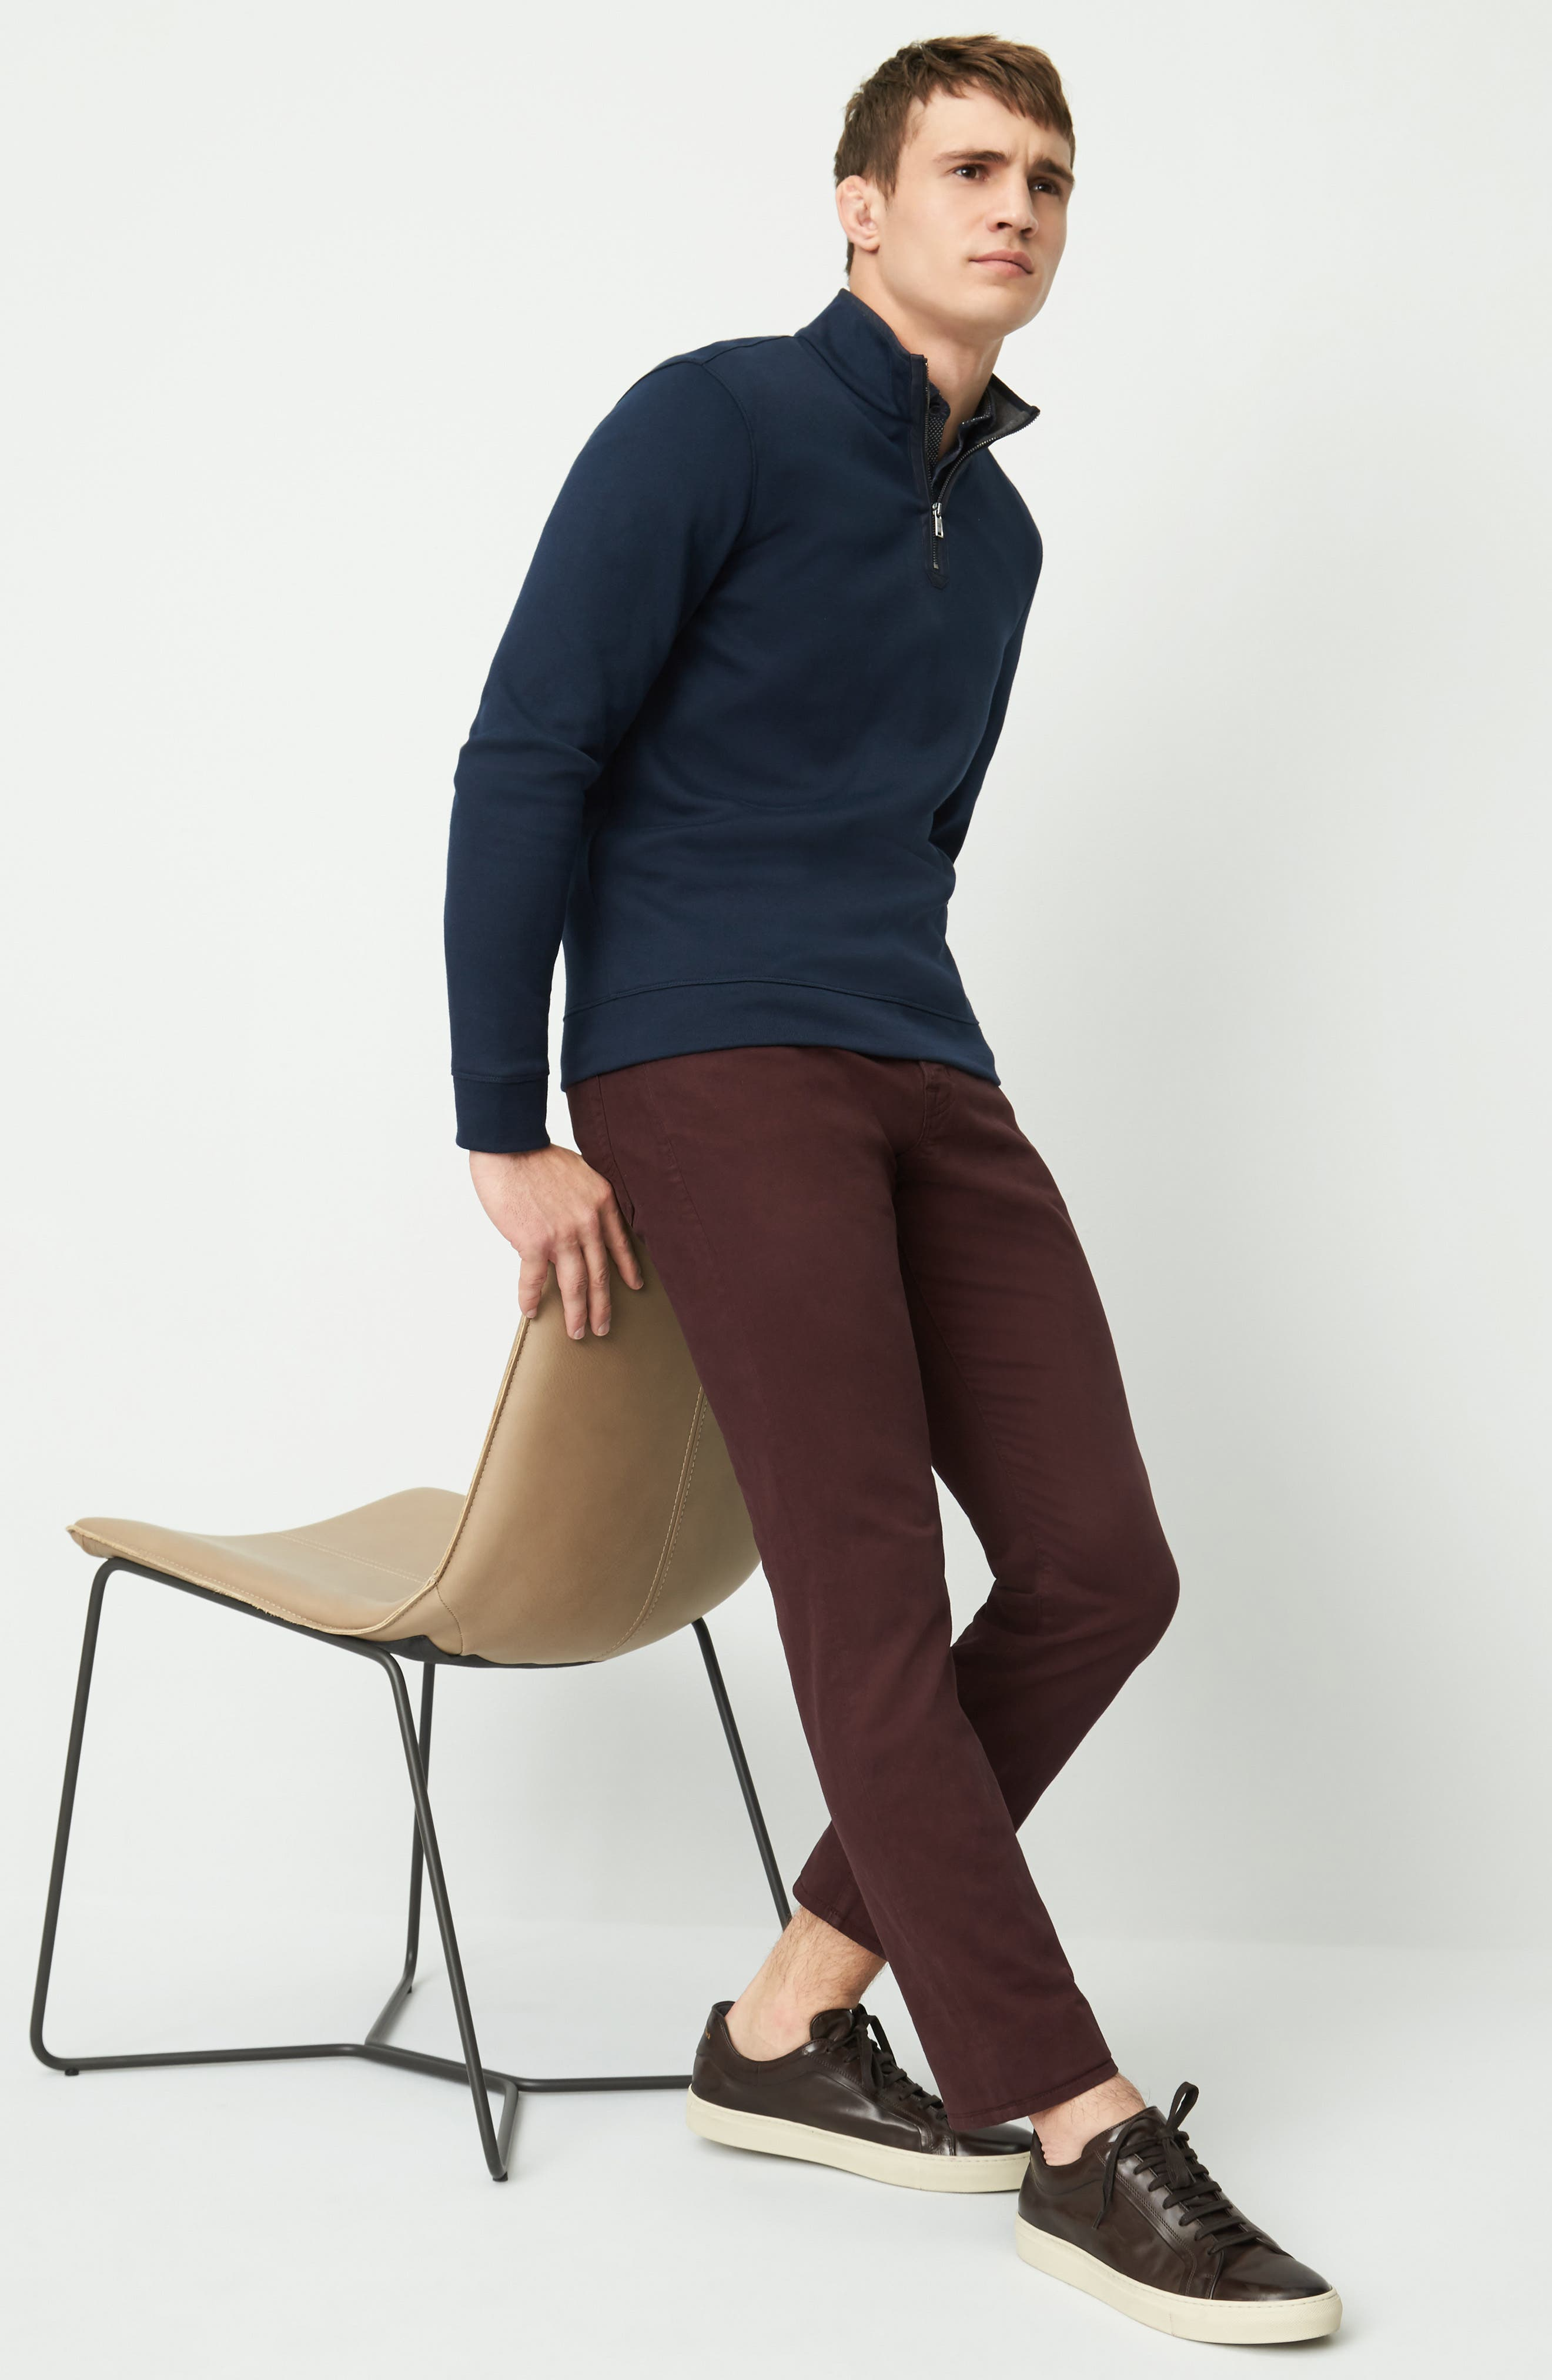 BOSS Pullover, Ted Baker London Shirt & AG Jeans Pants Outfit with Accessories